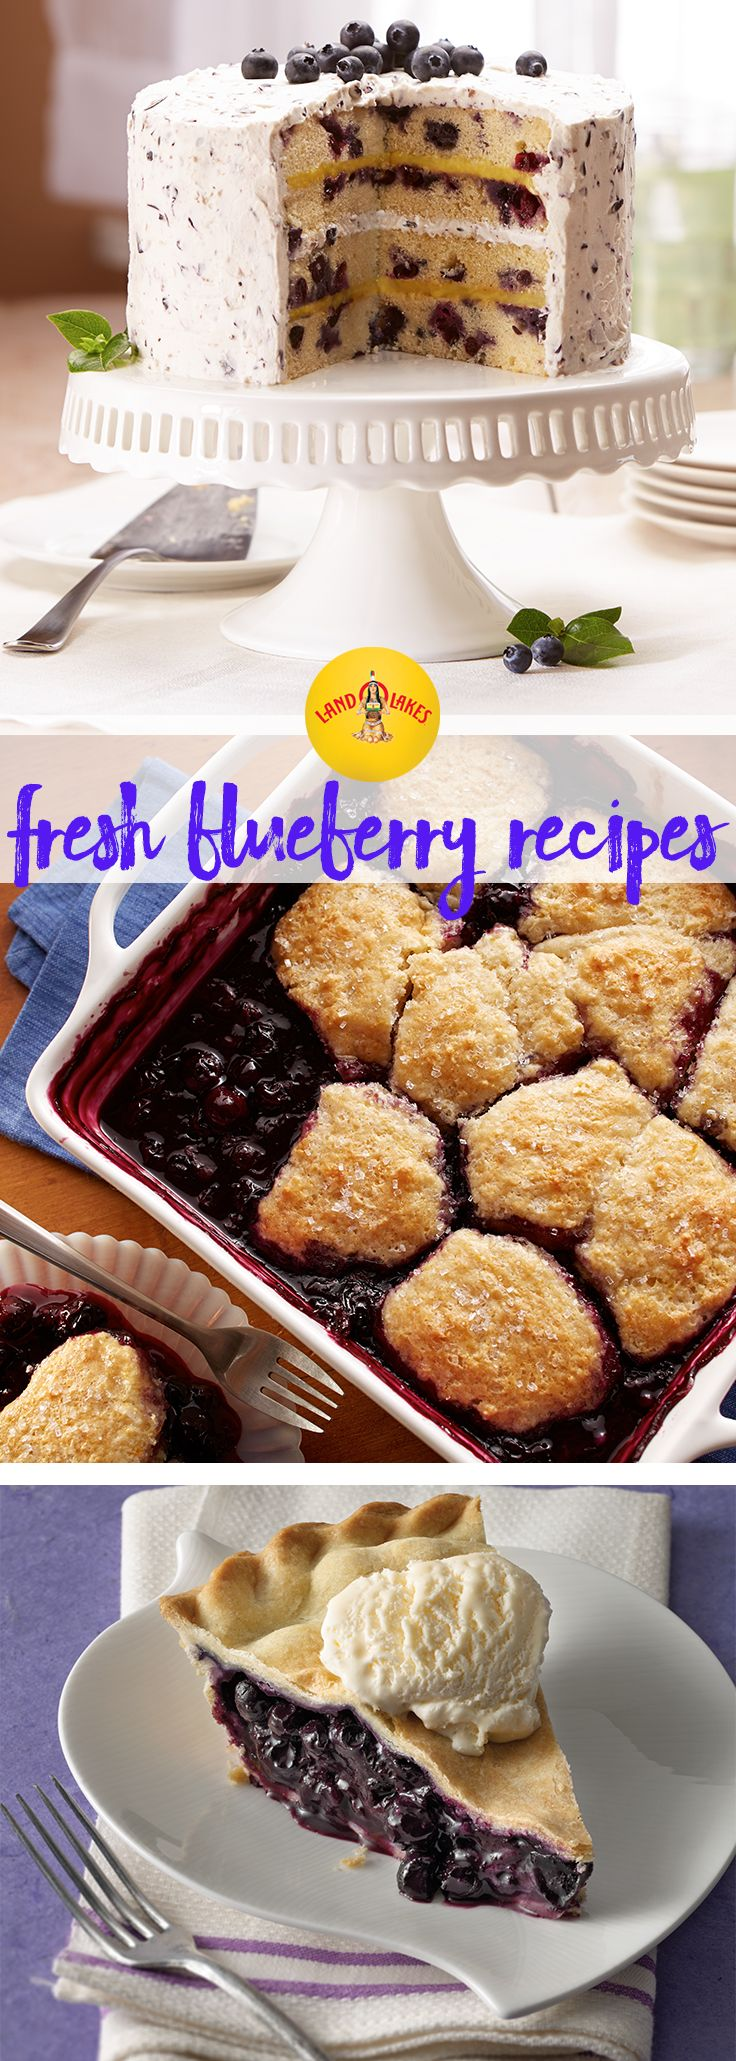 These sweet summer treats made with fresh blueberries are perfect for entertaining, potlucks or labor day weekend festivities.